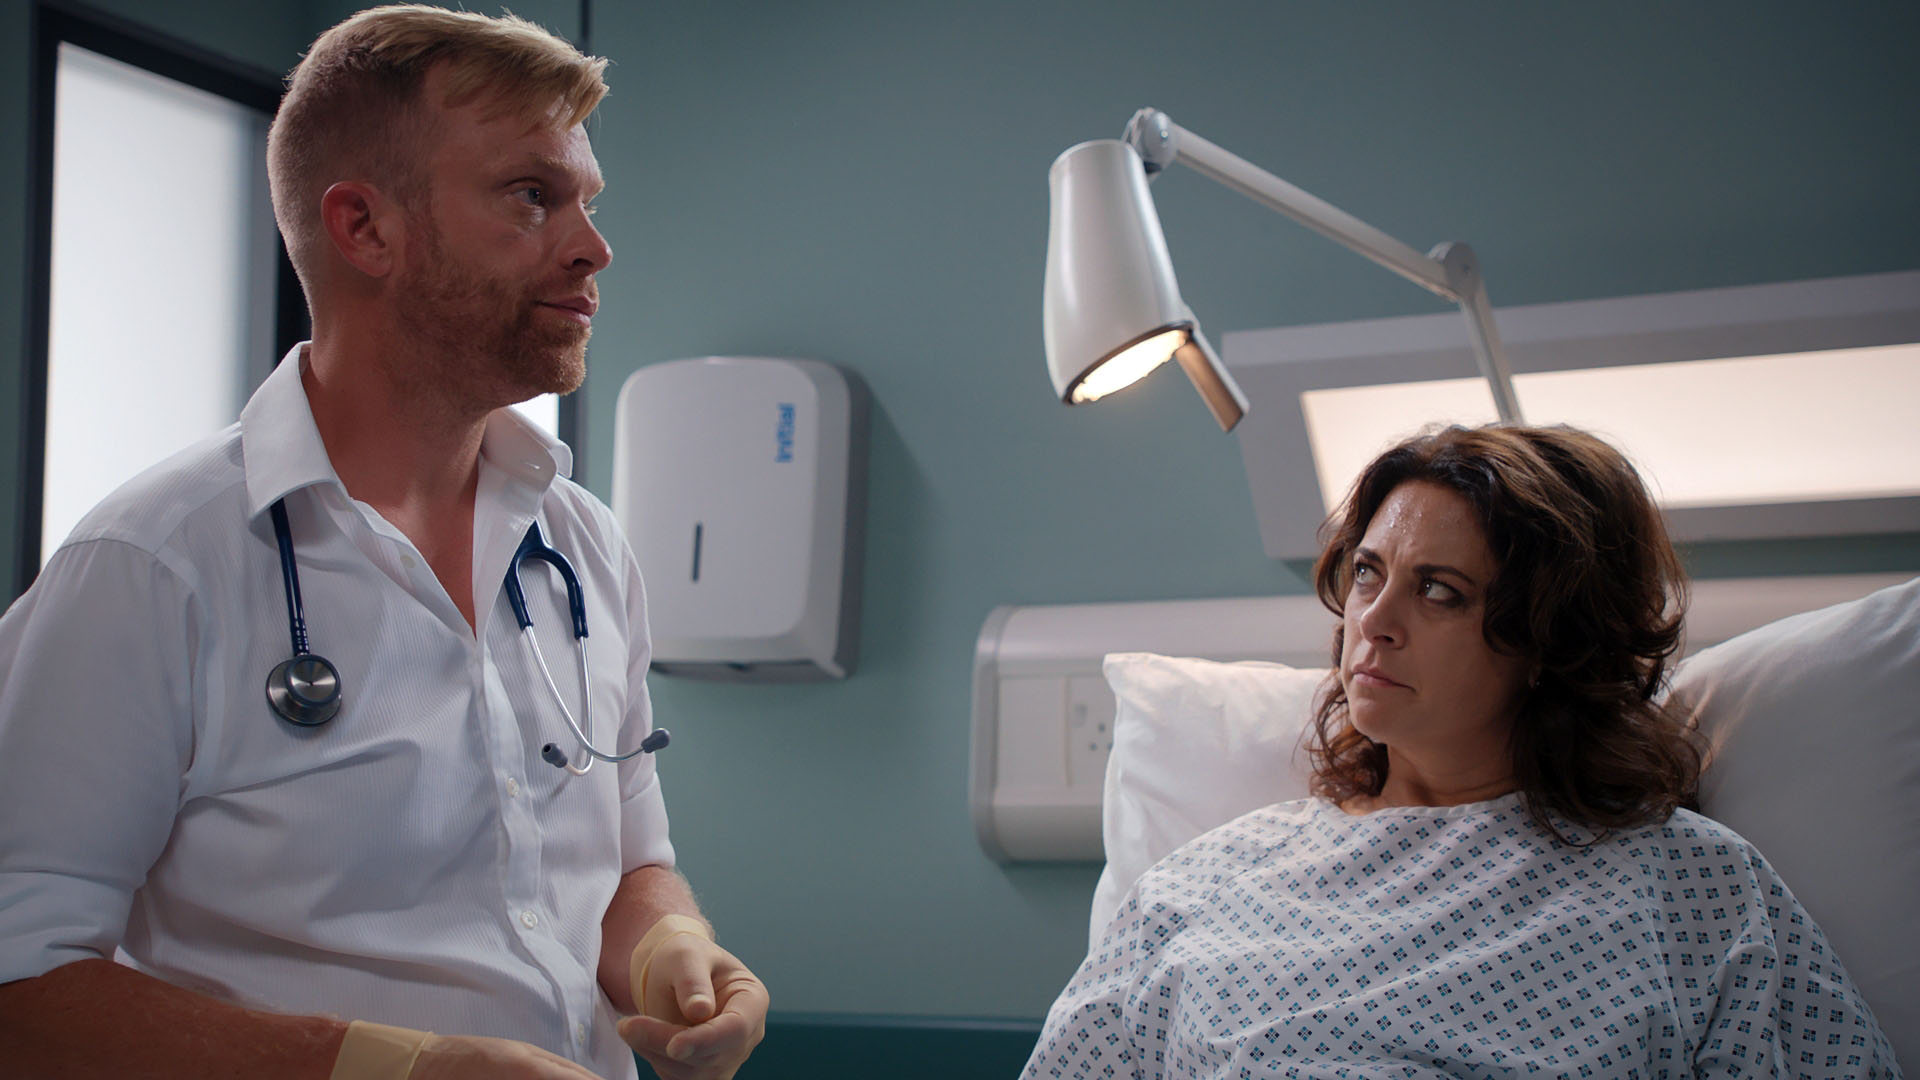 Casualty review with spoilers: Dylan's heart is broken again